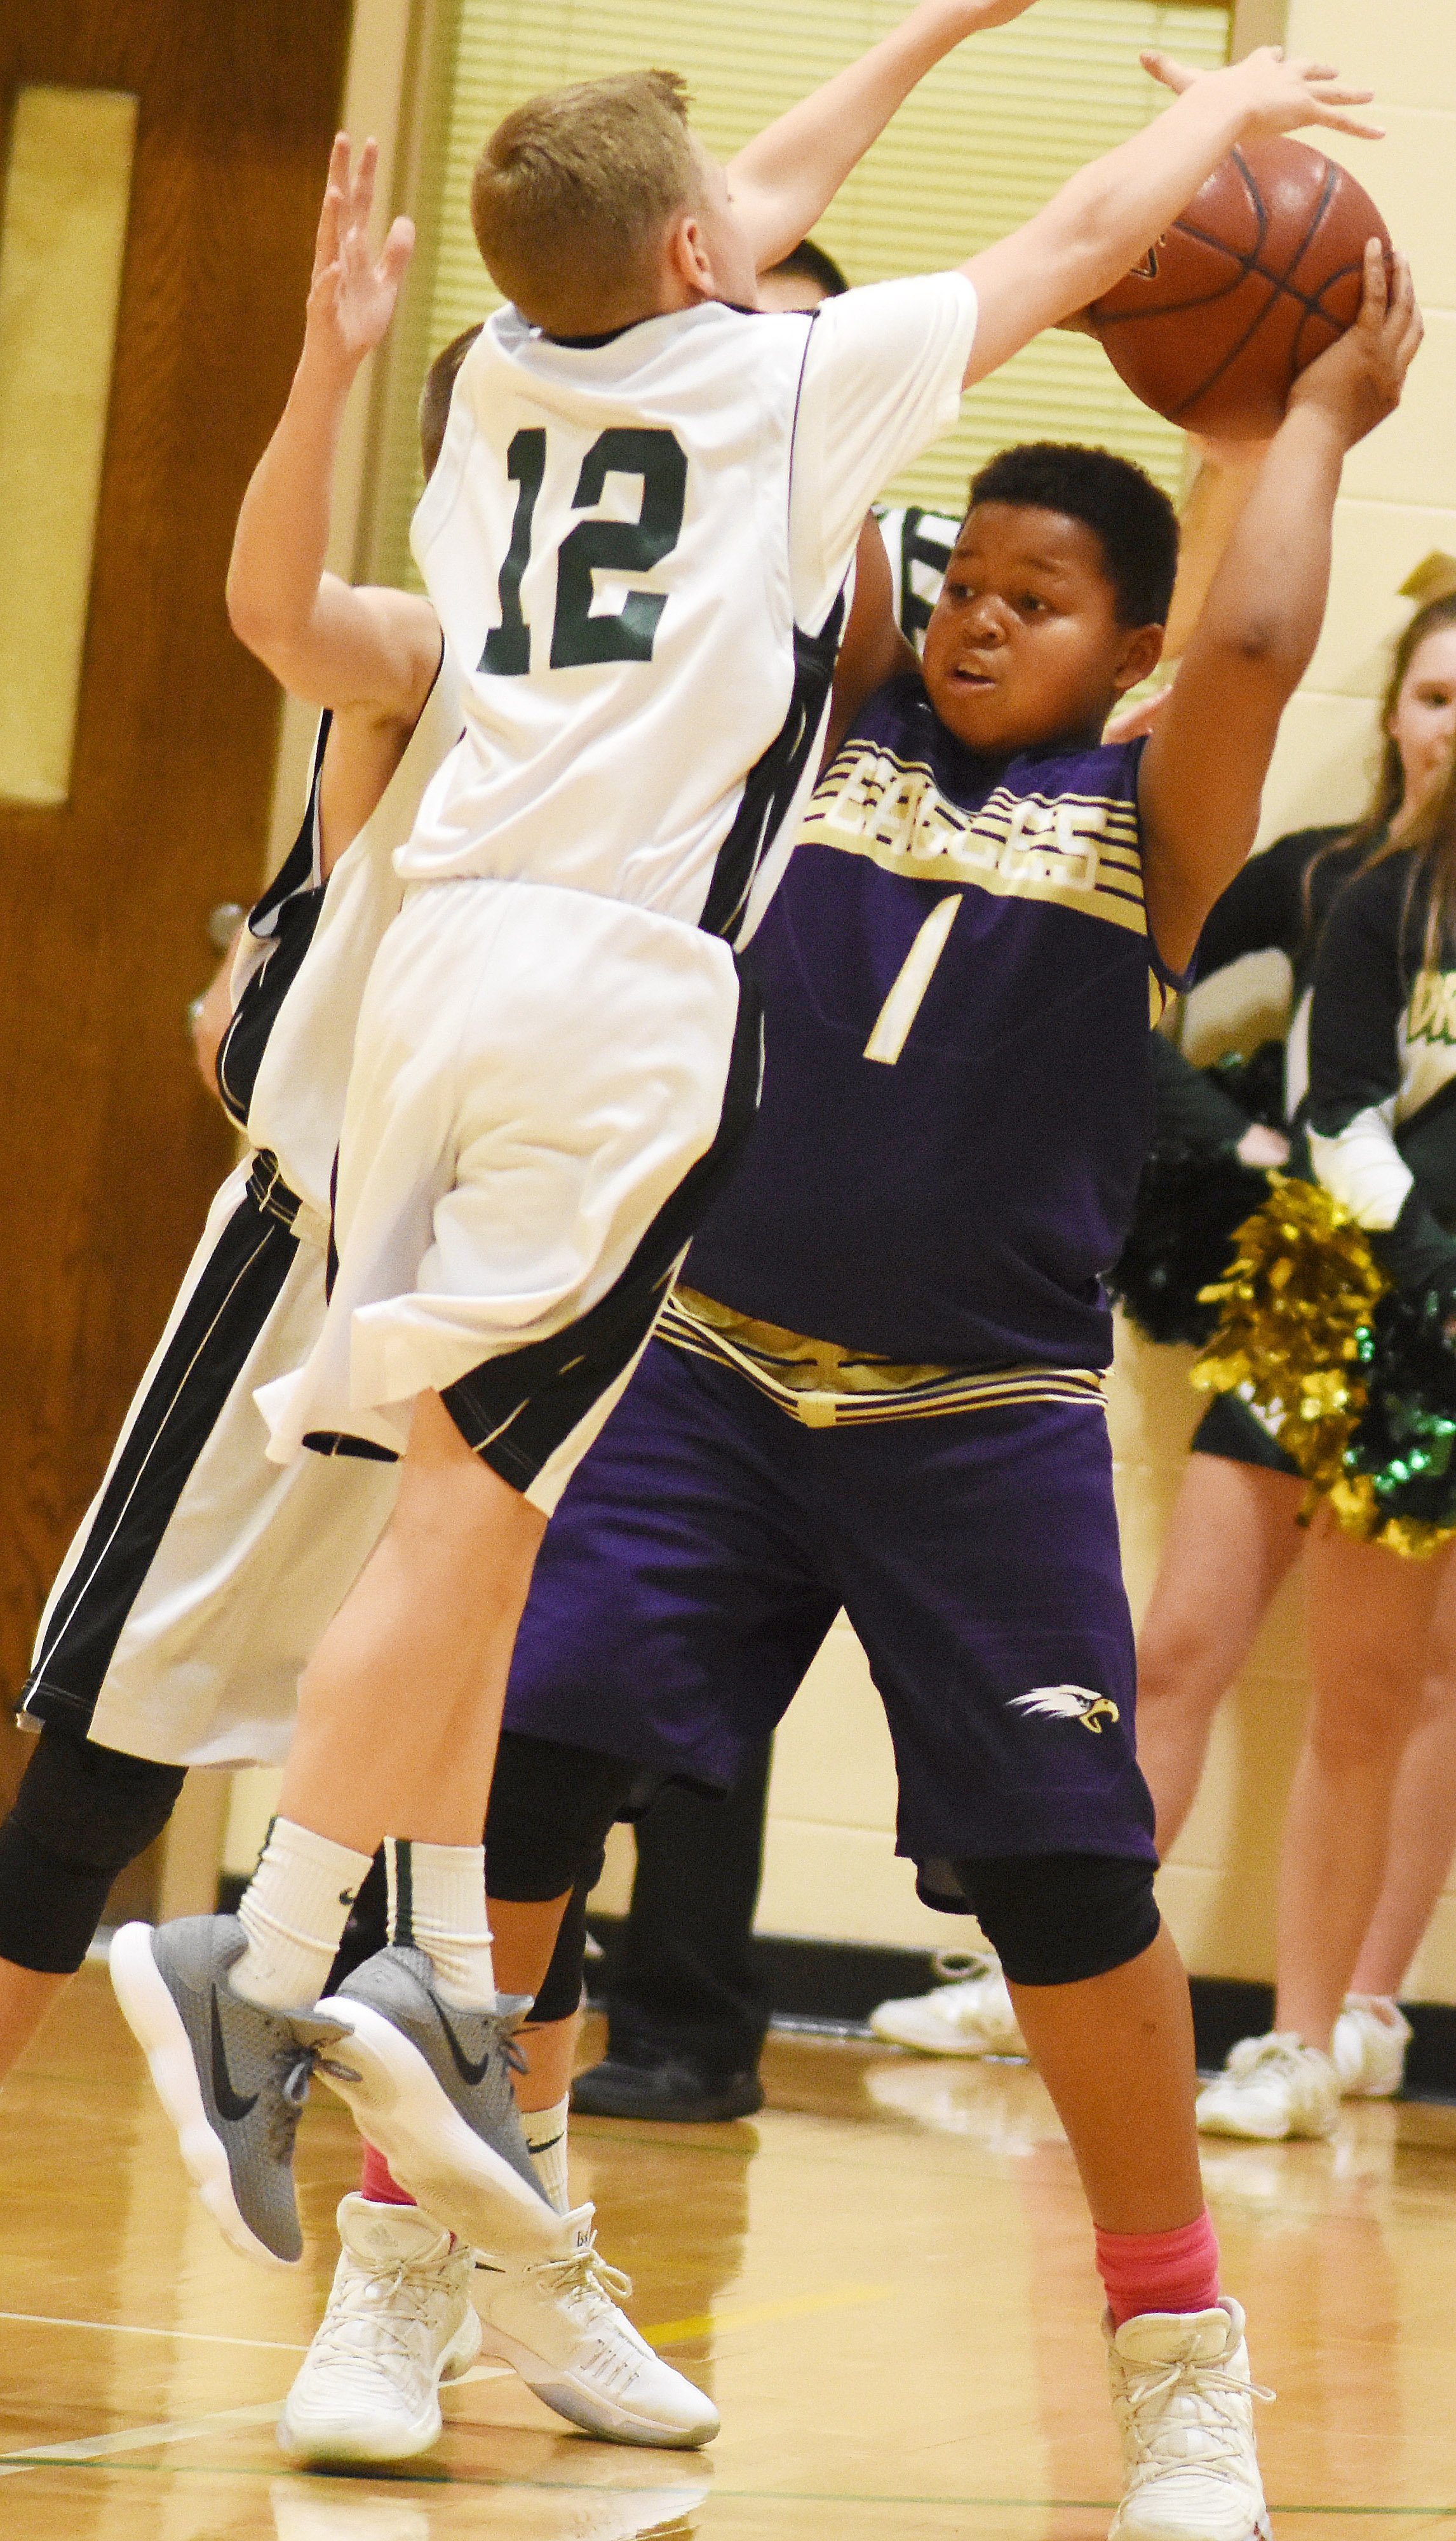 CMS seventh-grader Keondre Weathers protects the ball.